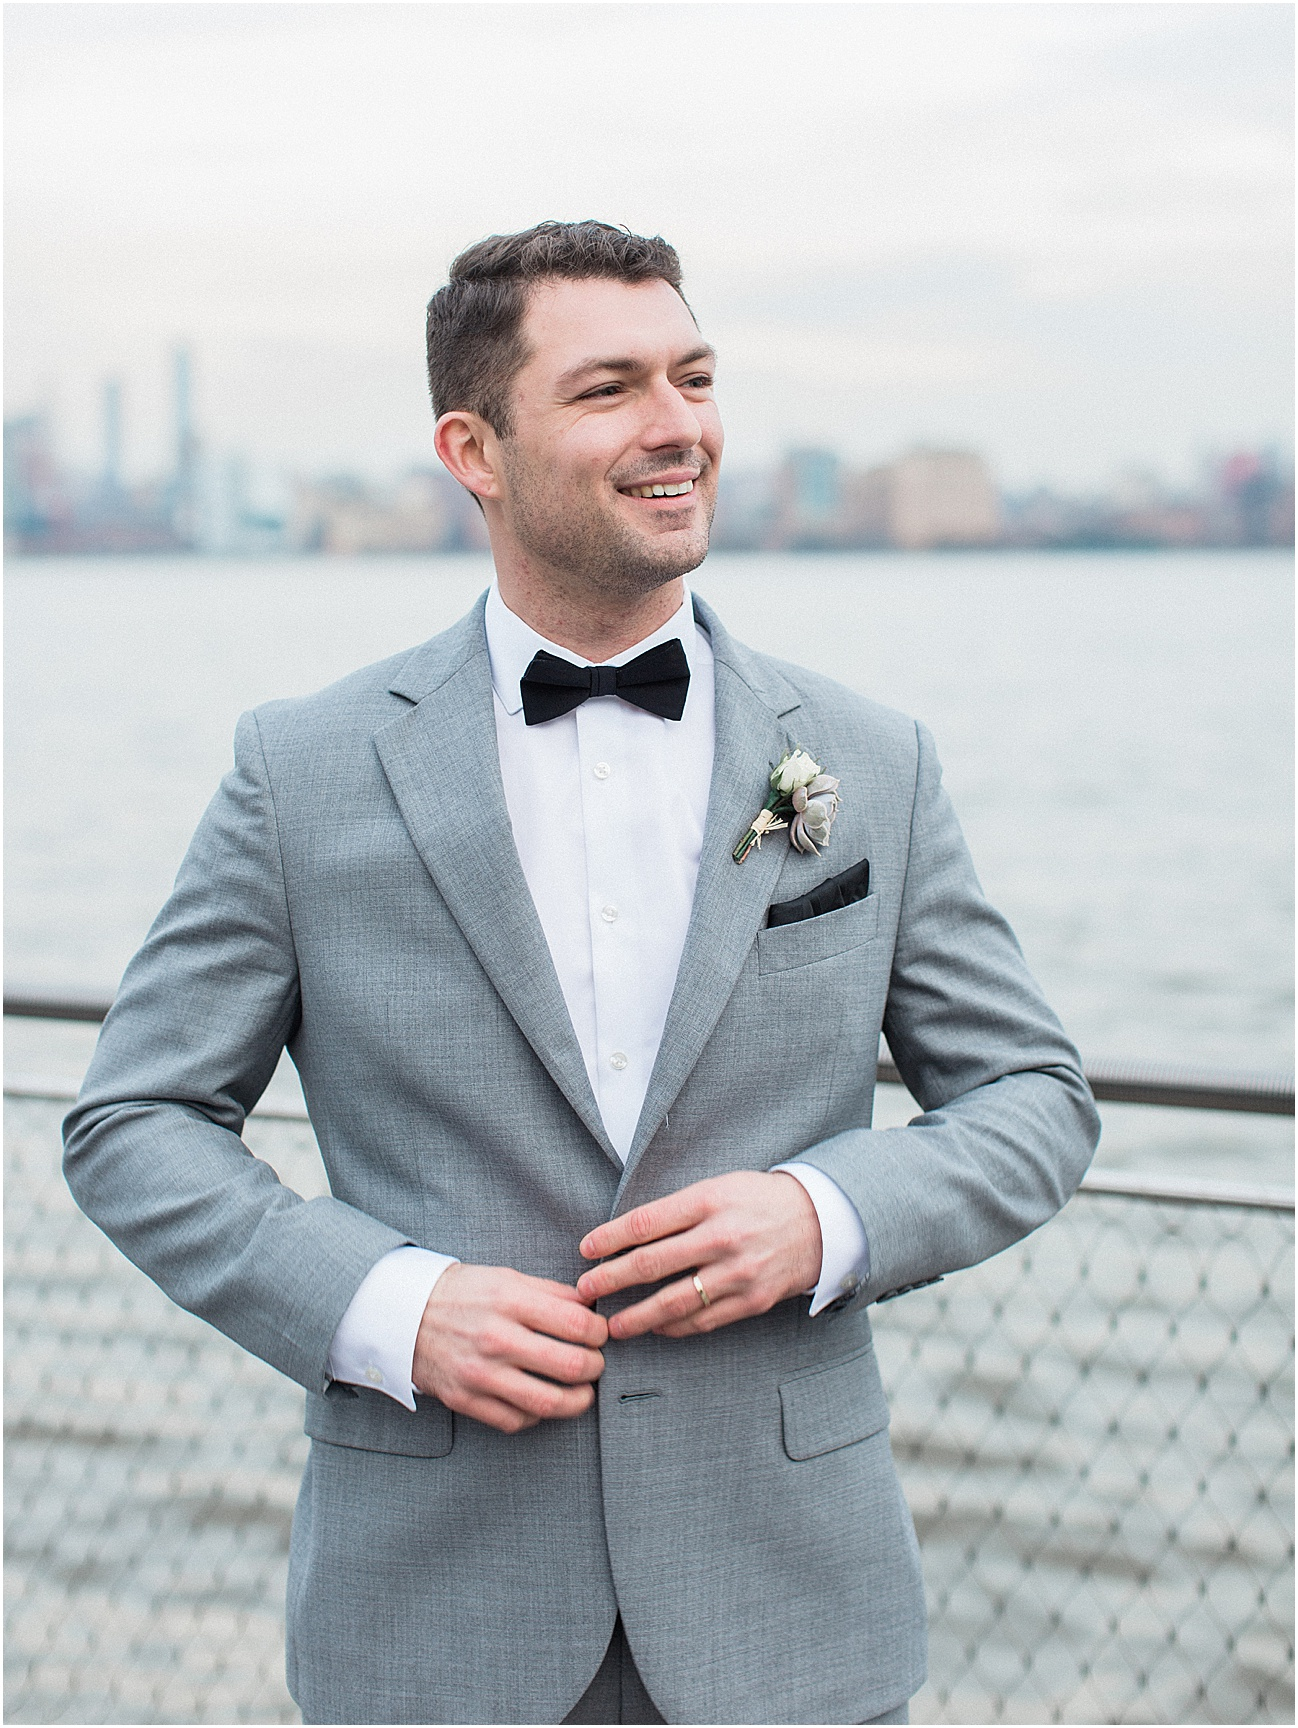 nyc_hoboken_skyline_kolo_klub_new_york_liberty_warehouse_cape_cod_boston_wedding_photographer_meredith_jane_photography_photo_1776.jpg